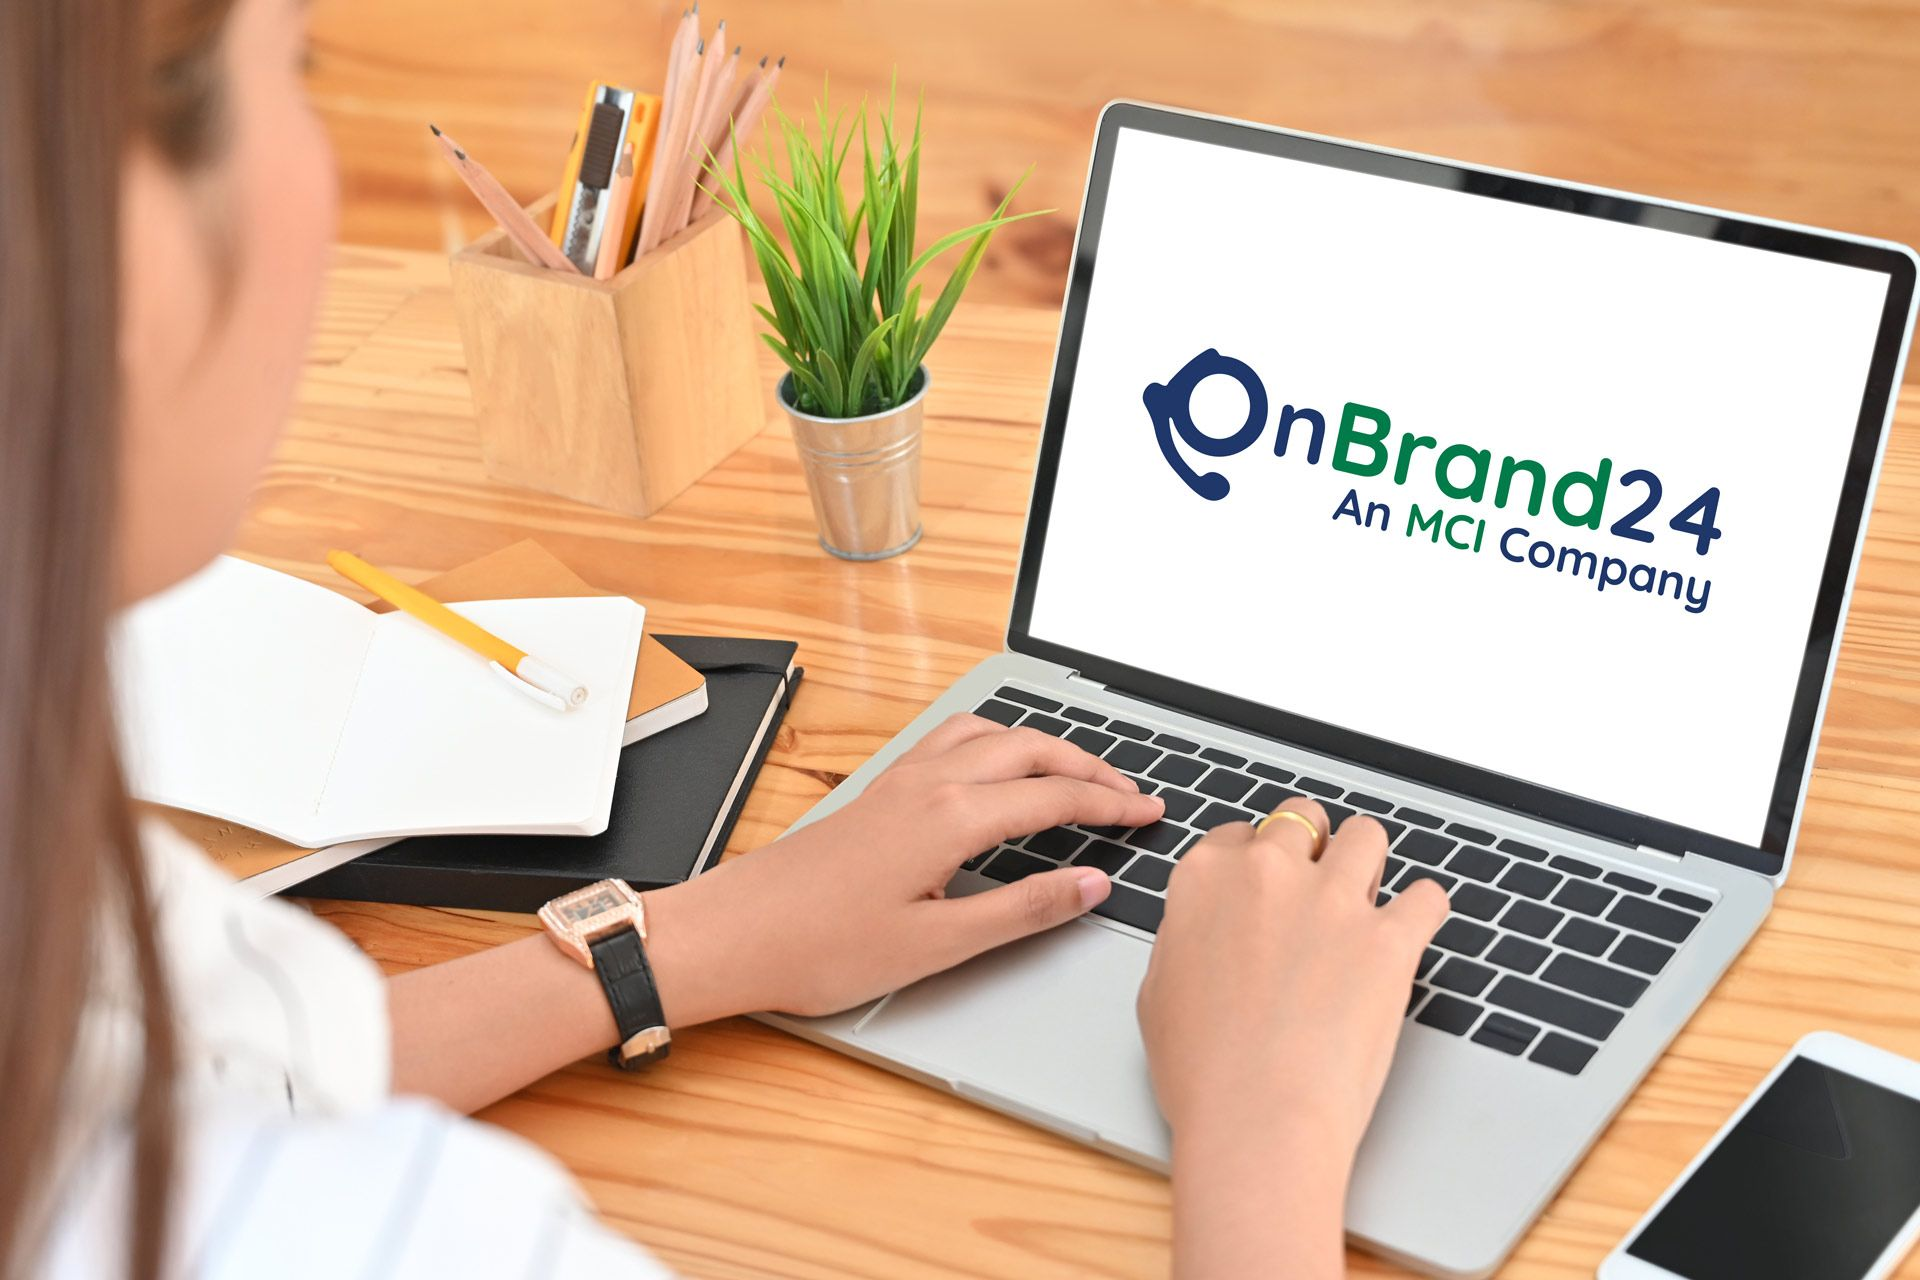 OnBrand24 Call Center Outsourcing Provider